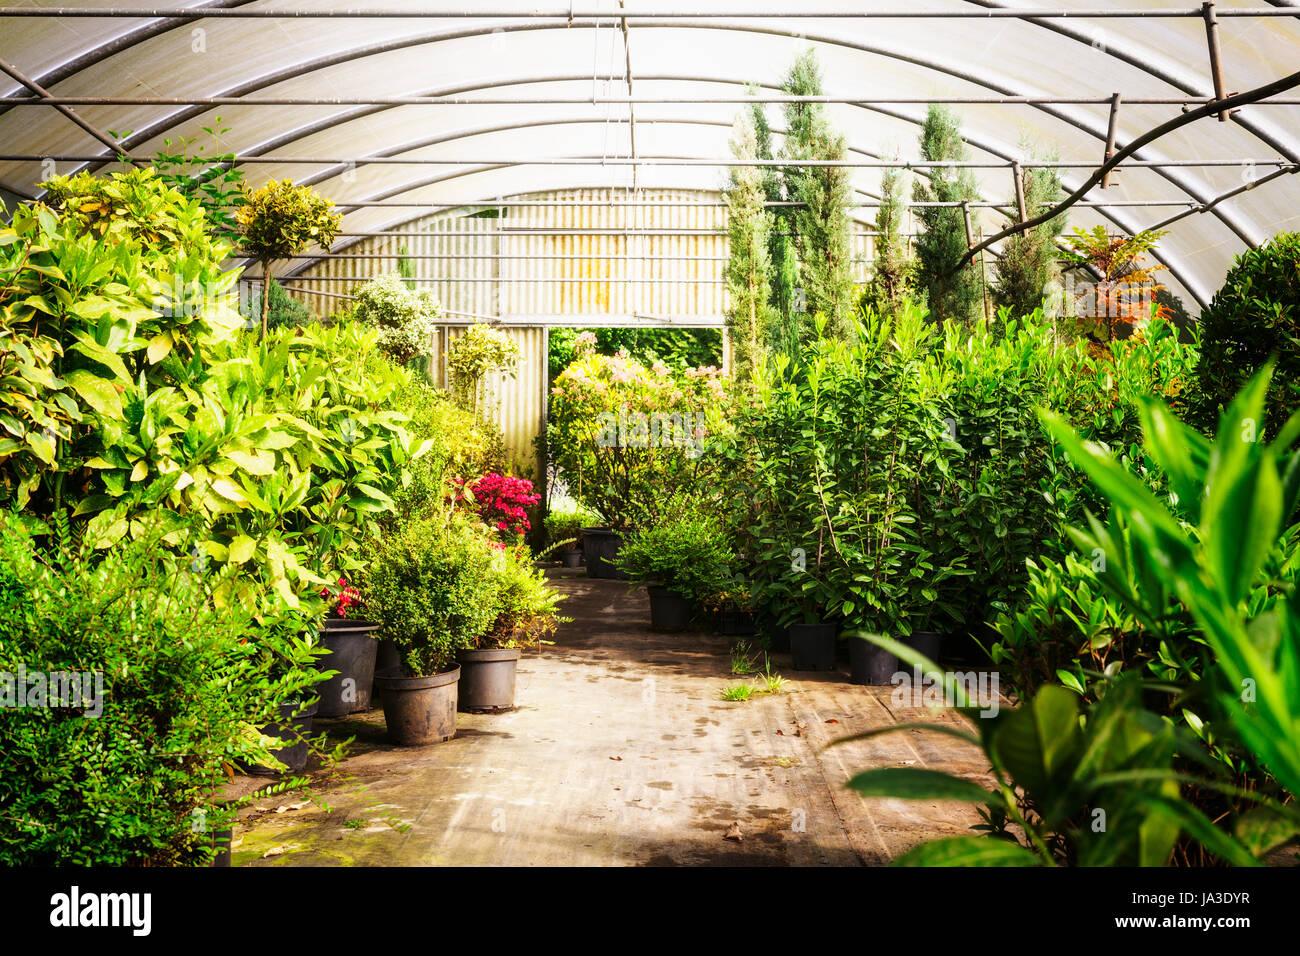 Horticulture Interior Greenhouse In Spring Stockfotos & Horticulture ...